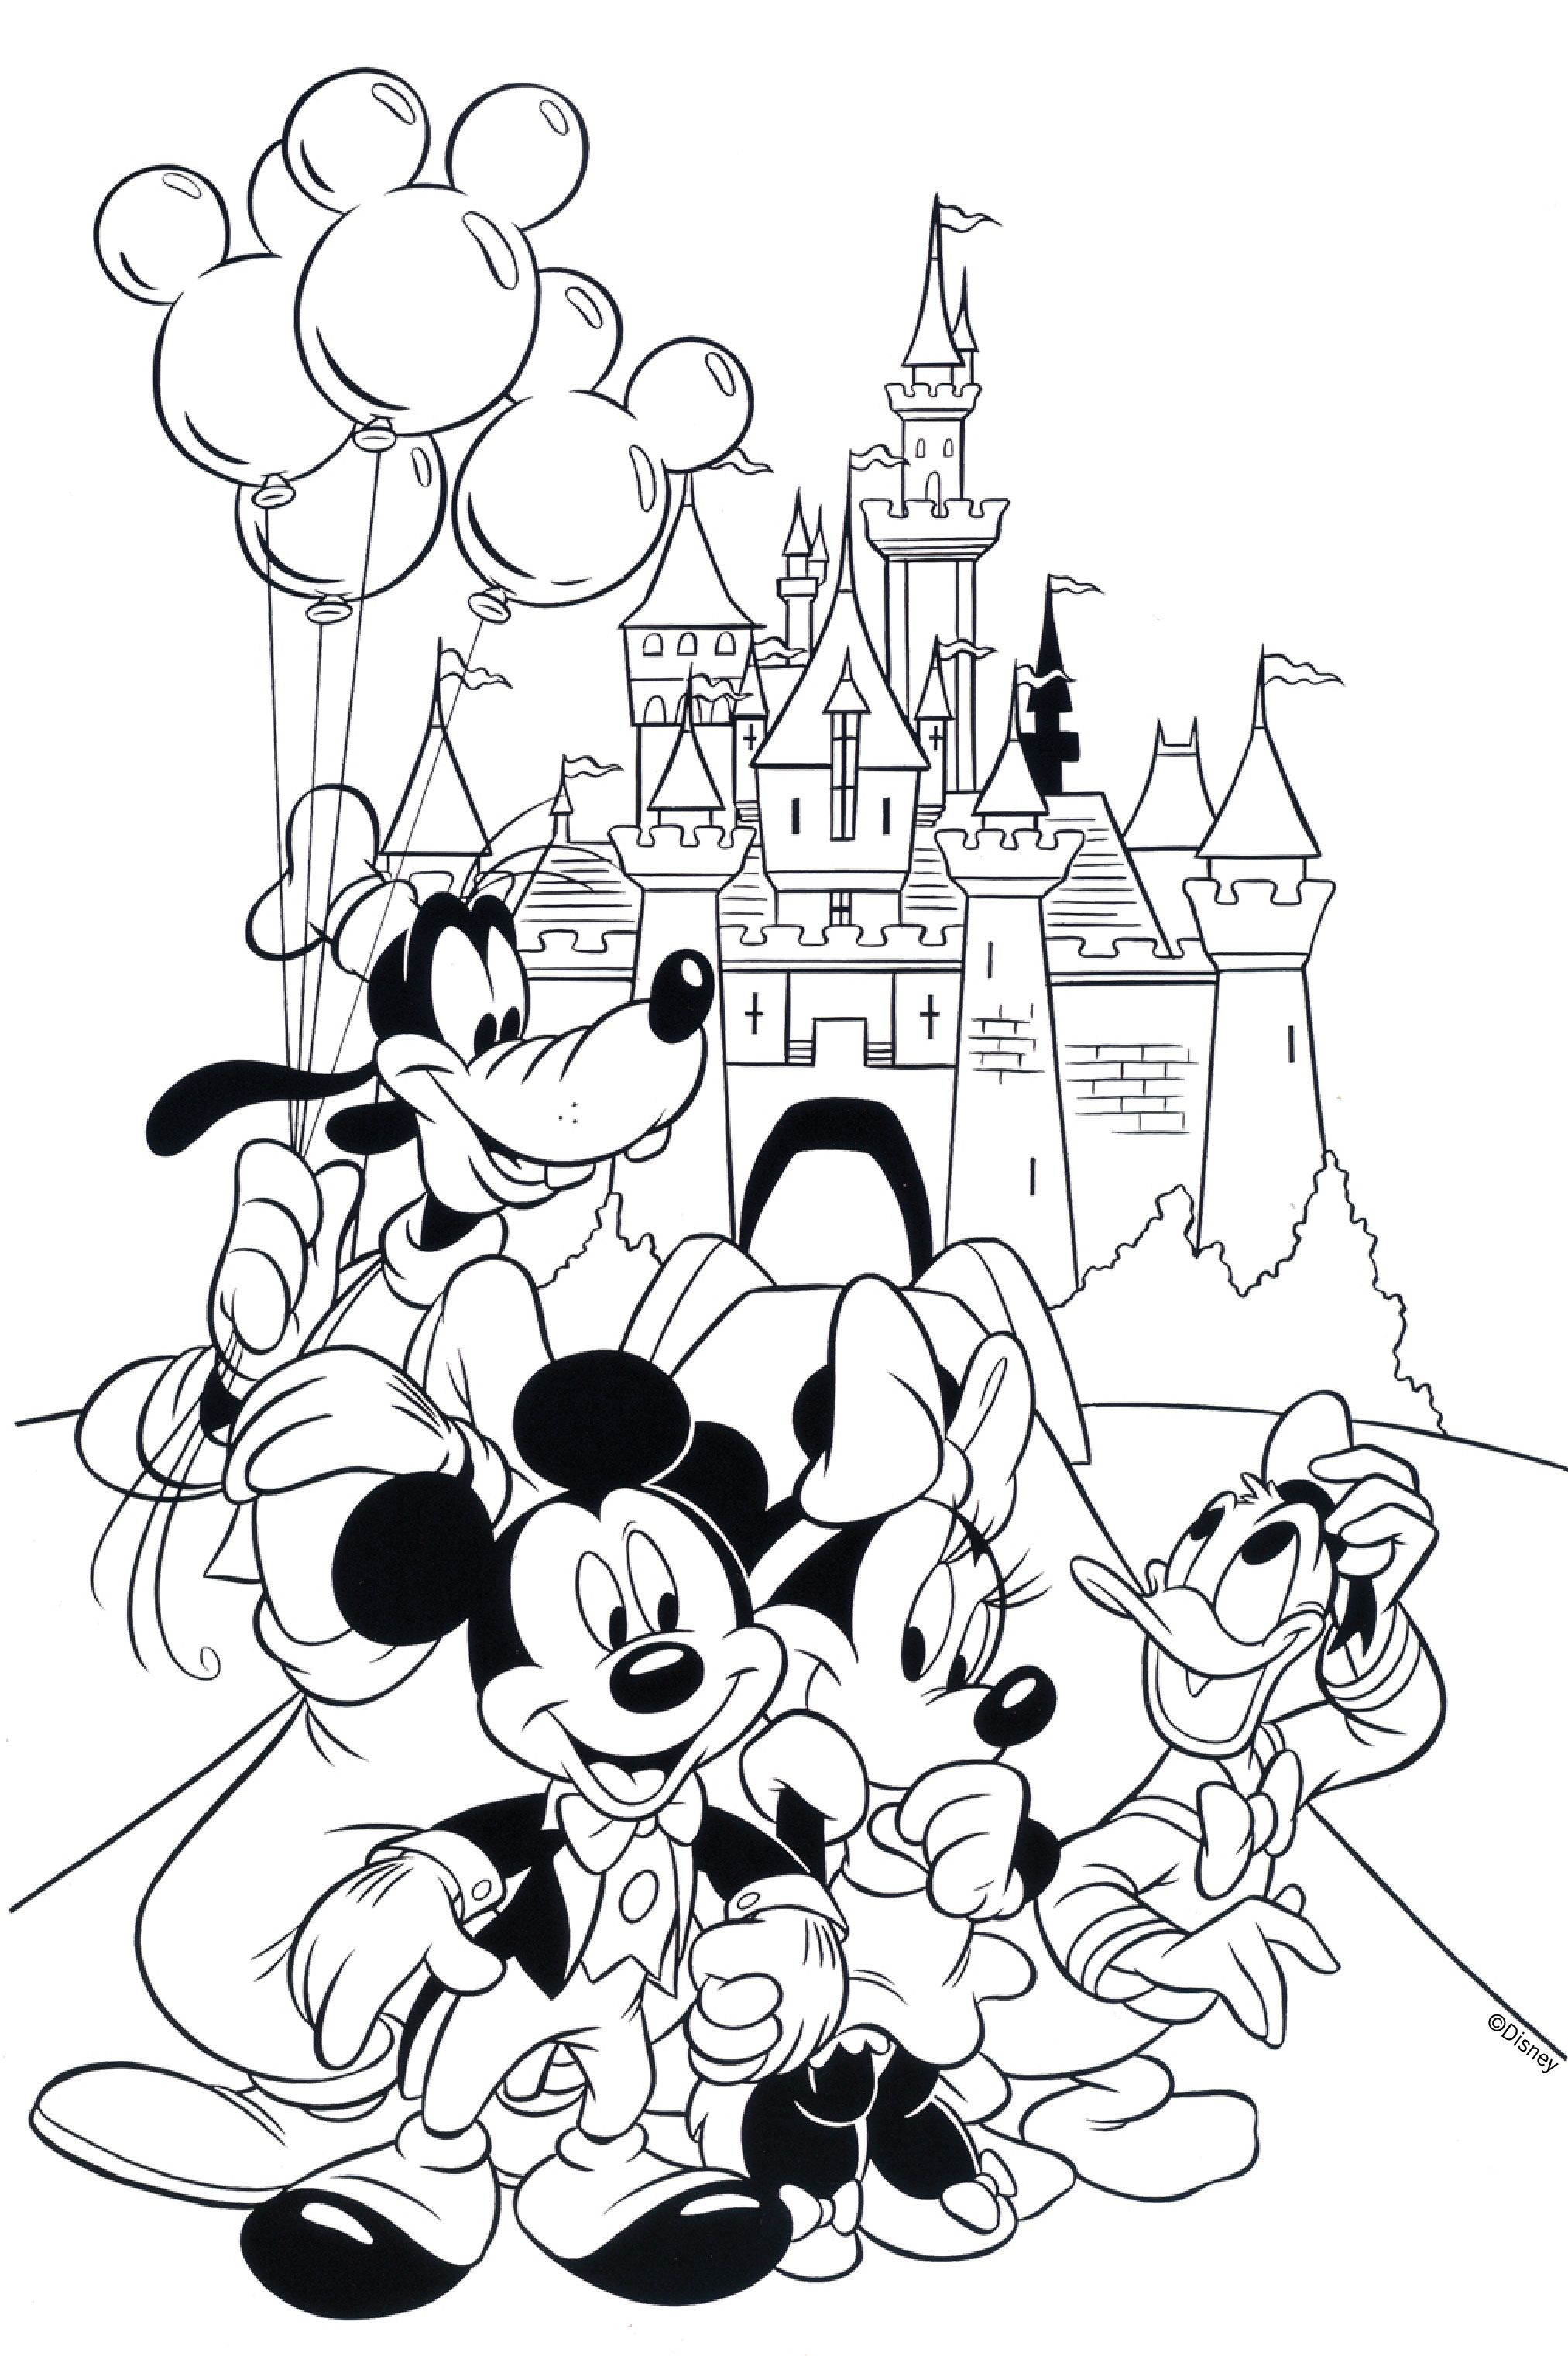 Coloring pages disney printable -  Free Disney Coloring Page Printable